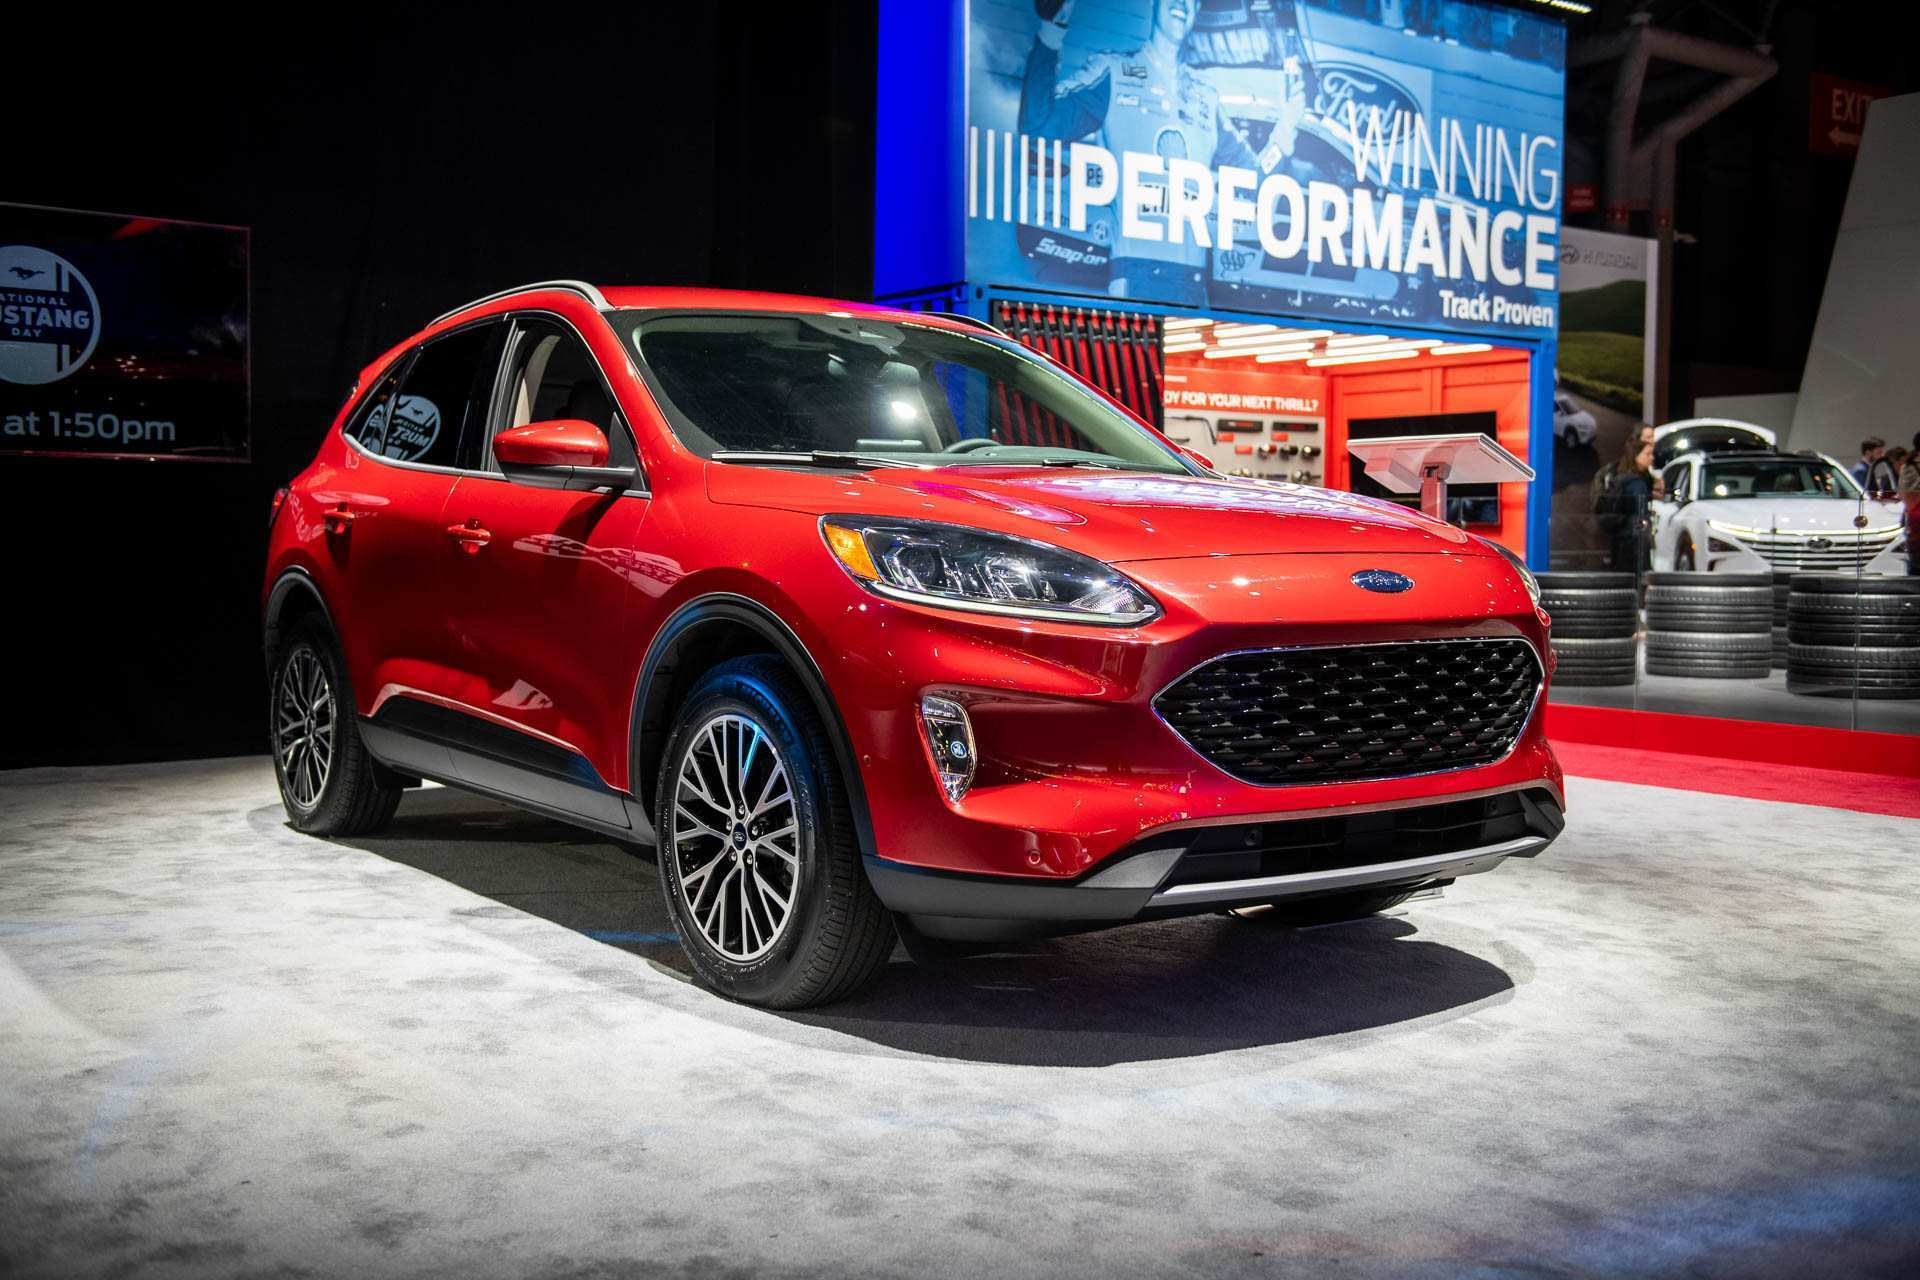 81 A Ford Hybrid Escape 2020 Redesign And Review